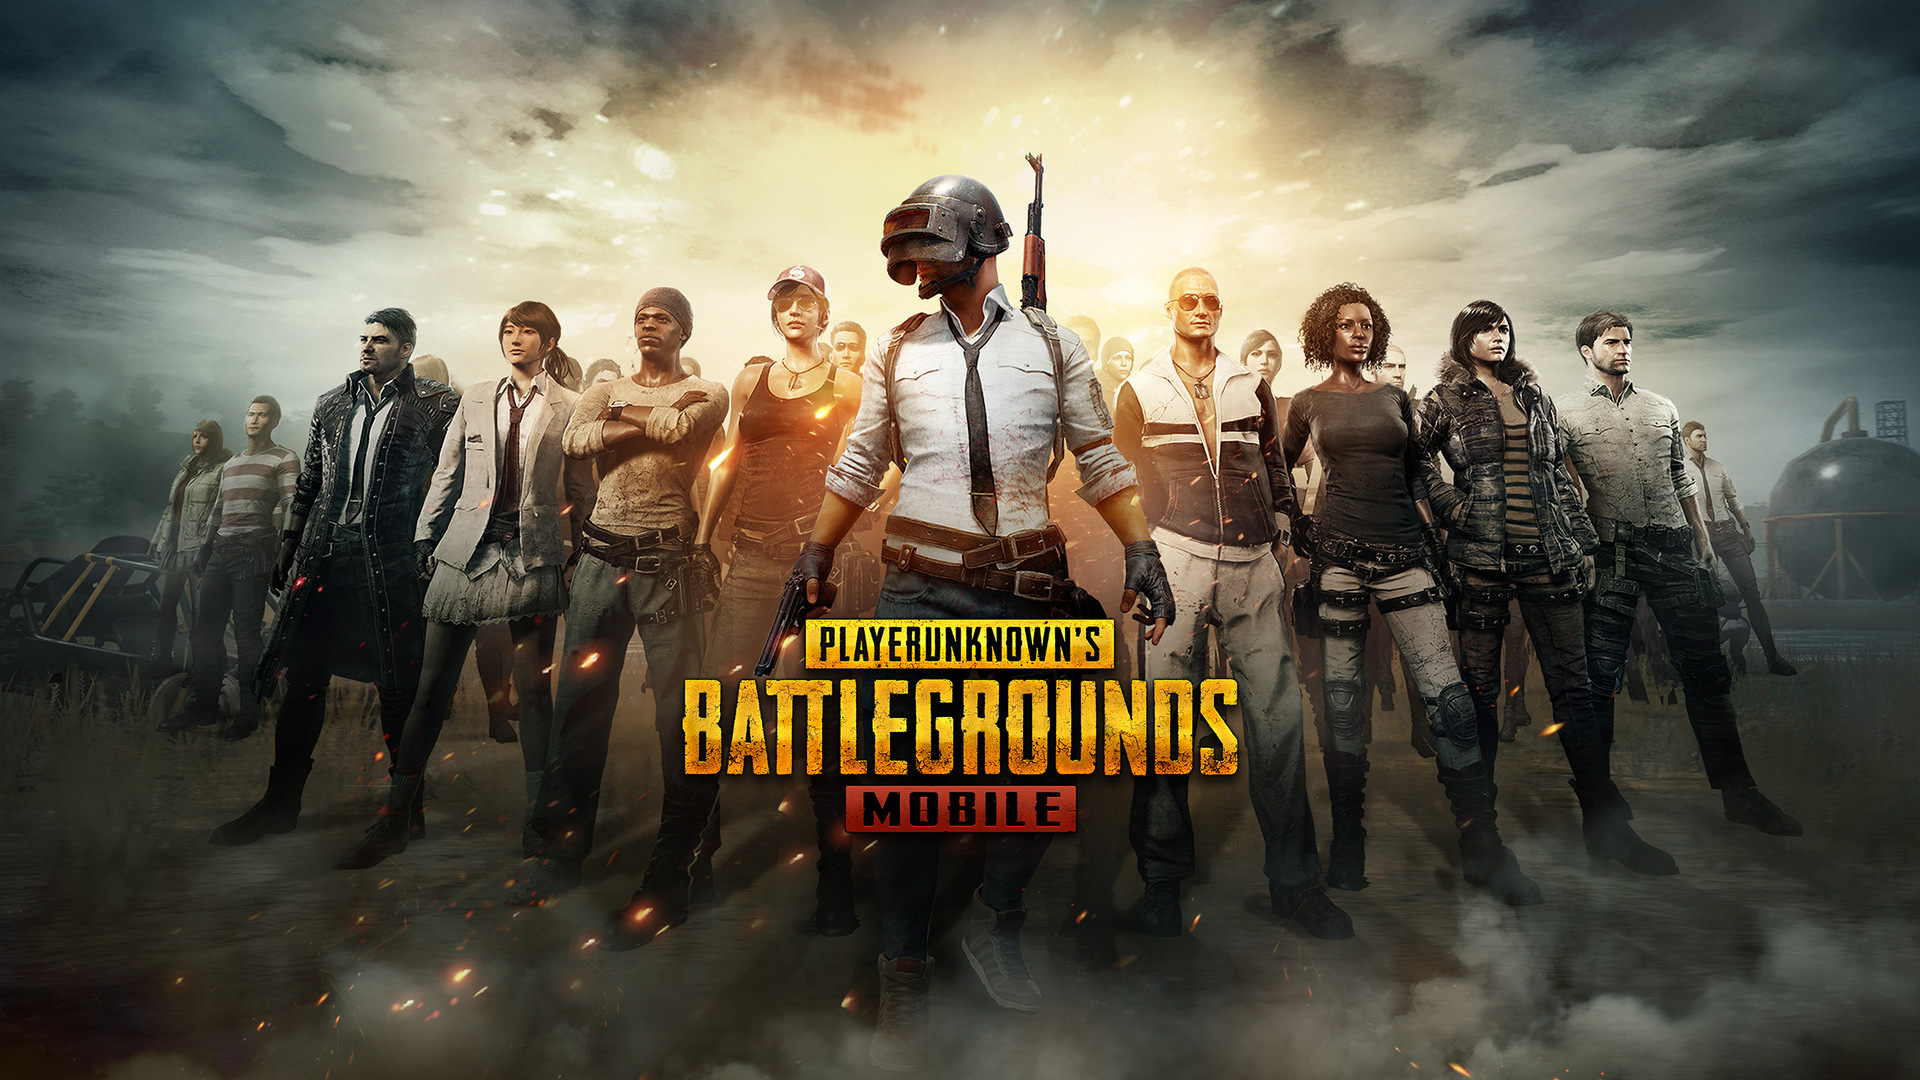 pubg wallpaper 1920x1080: 1920x1080 Pubg Mobile Laptop Full HD 1080P HD 4k